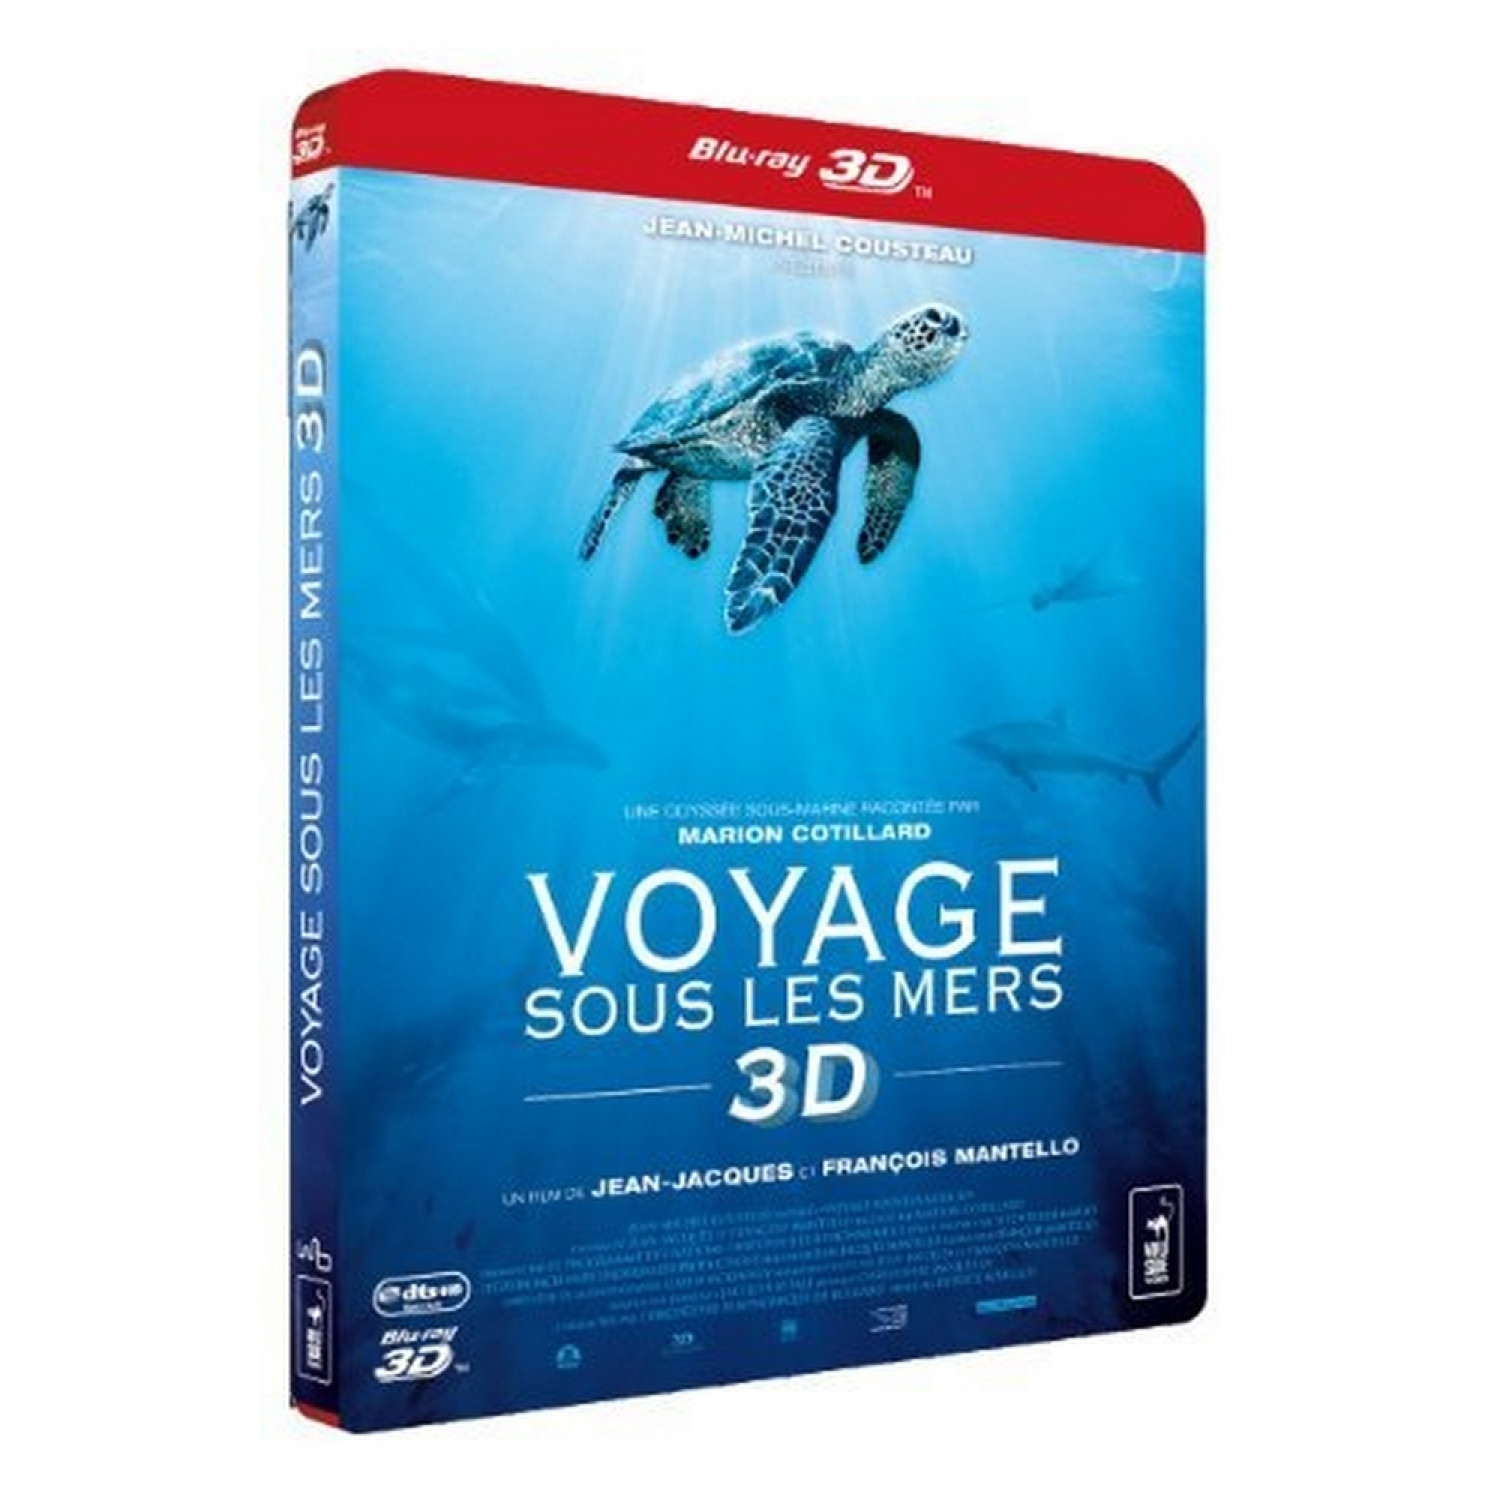 Voyage Sous Les Mers - Blu-ray 3d Active